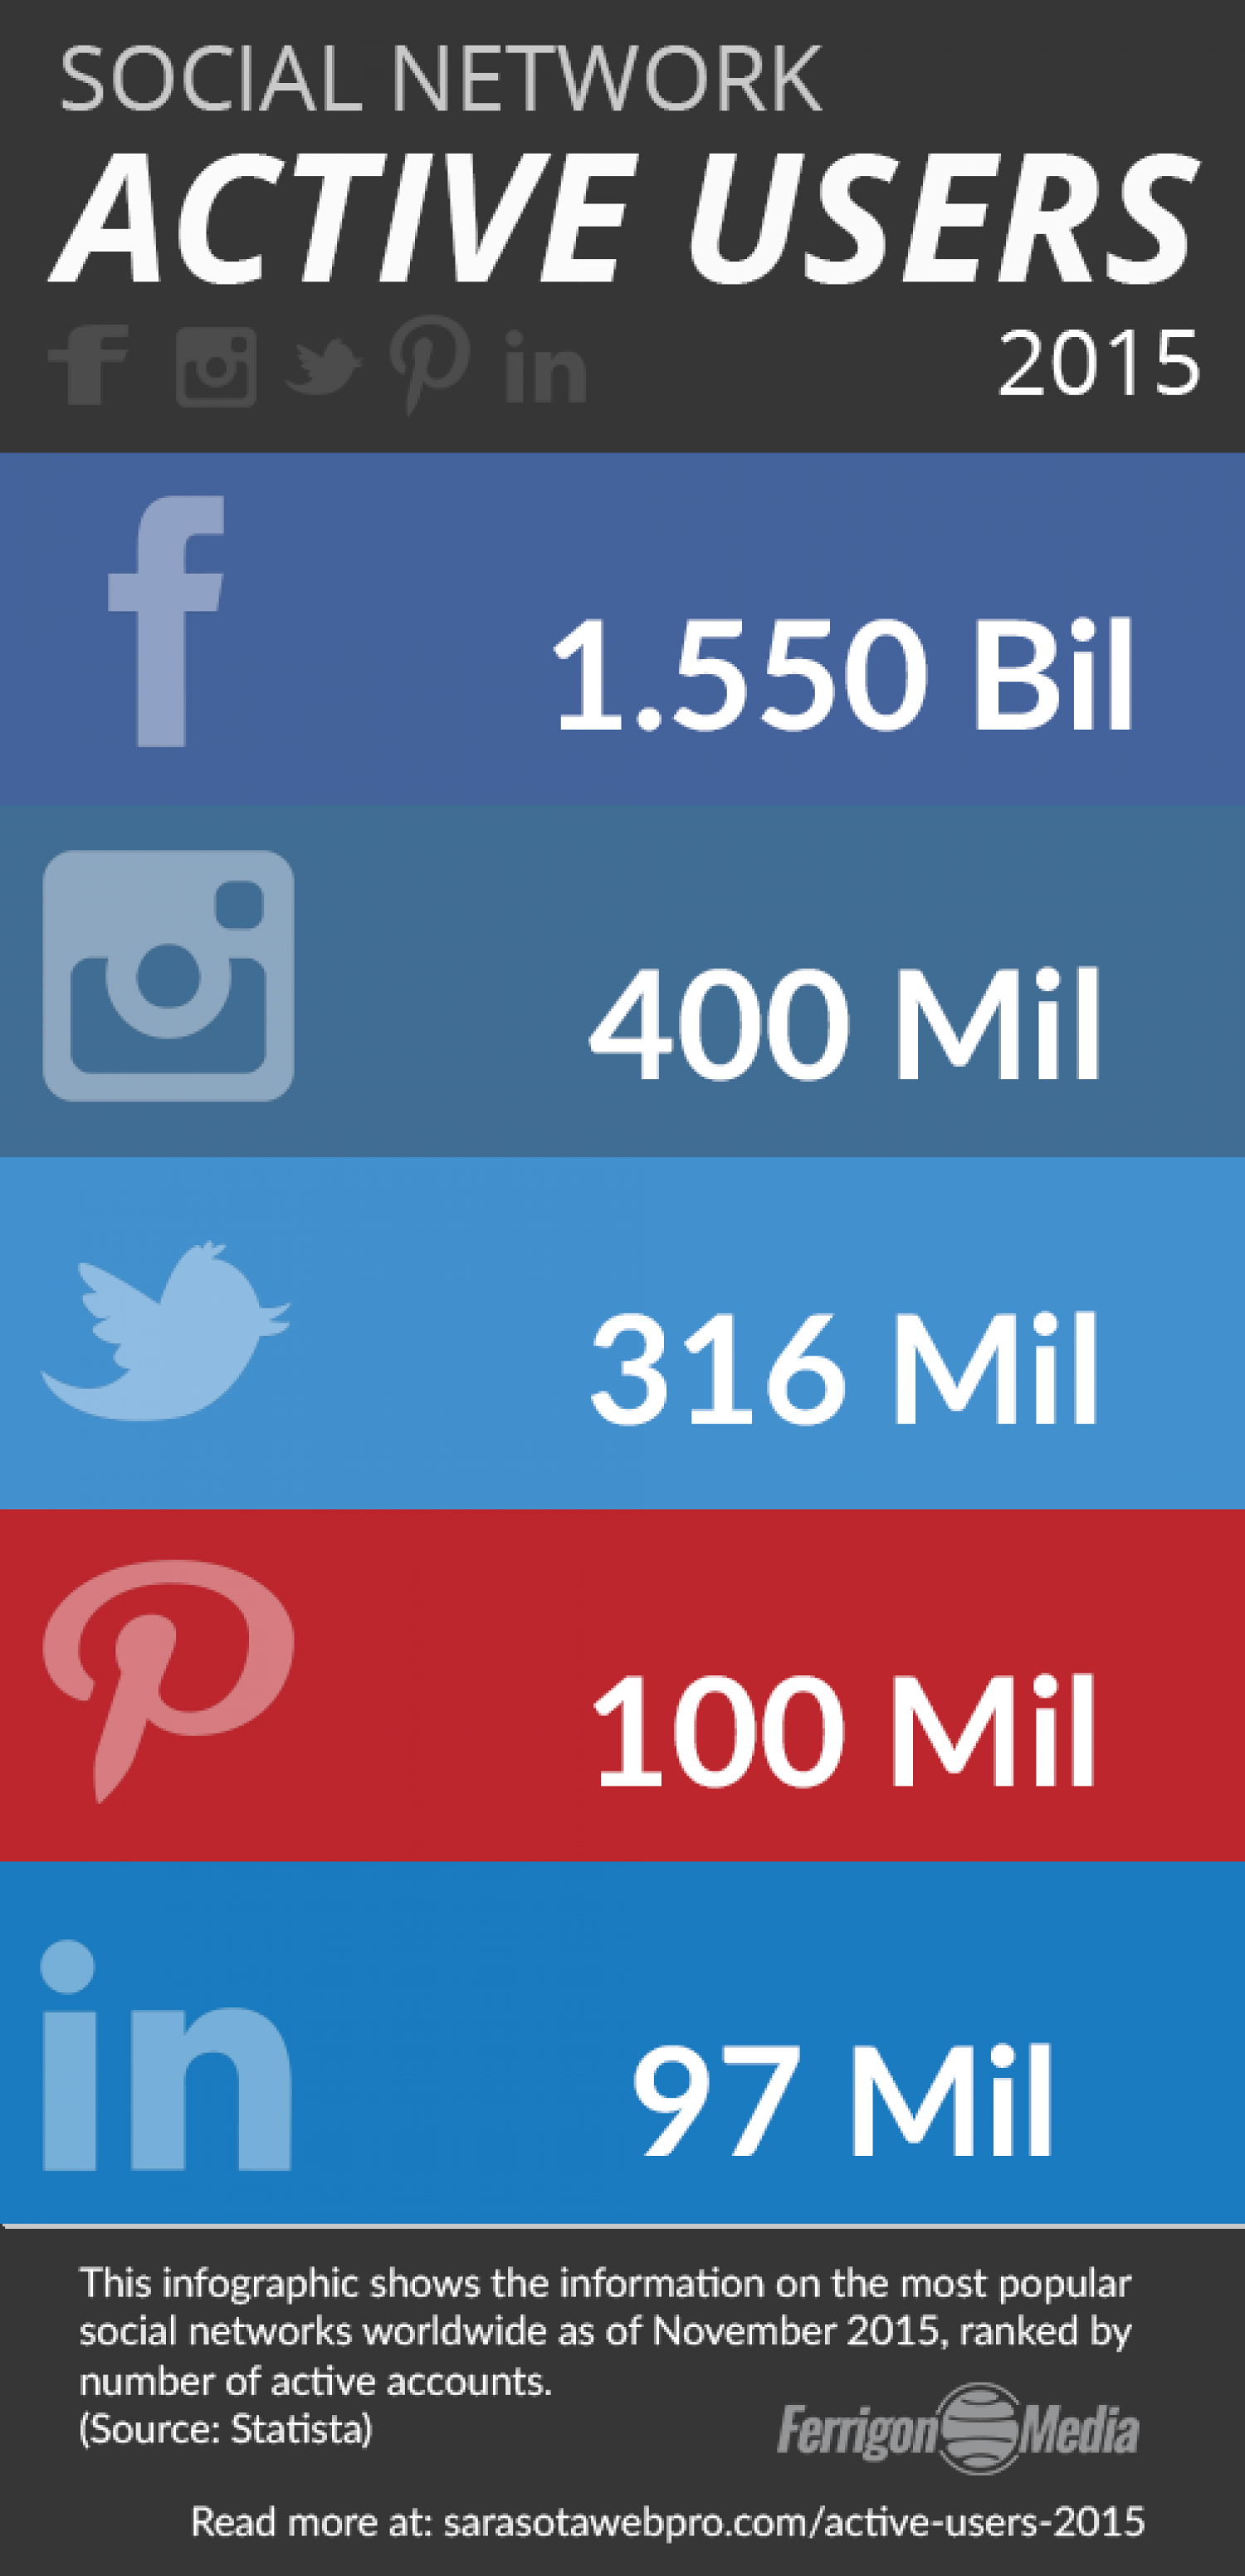 2015 Social Network Active Users Infographic